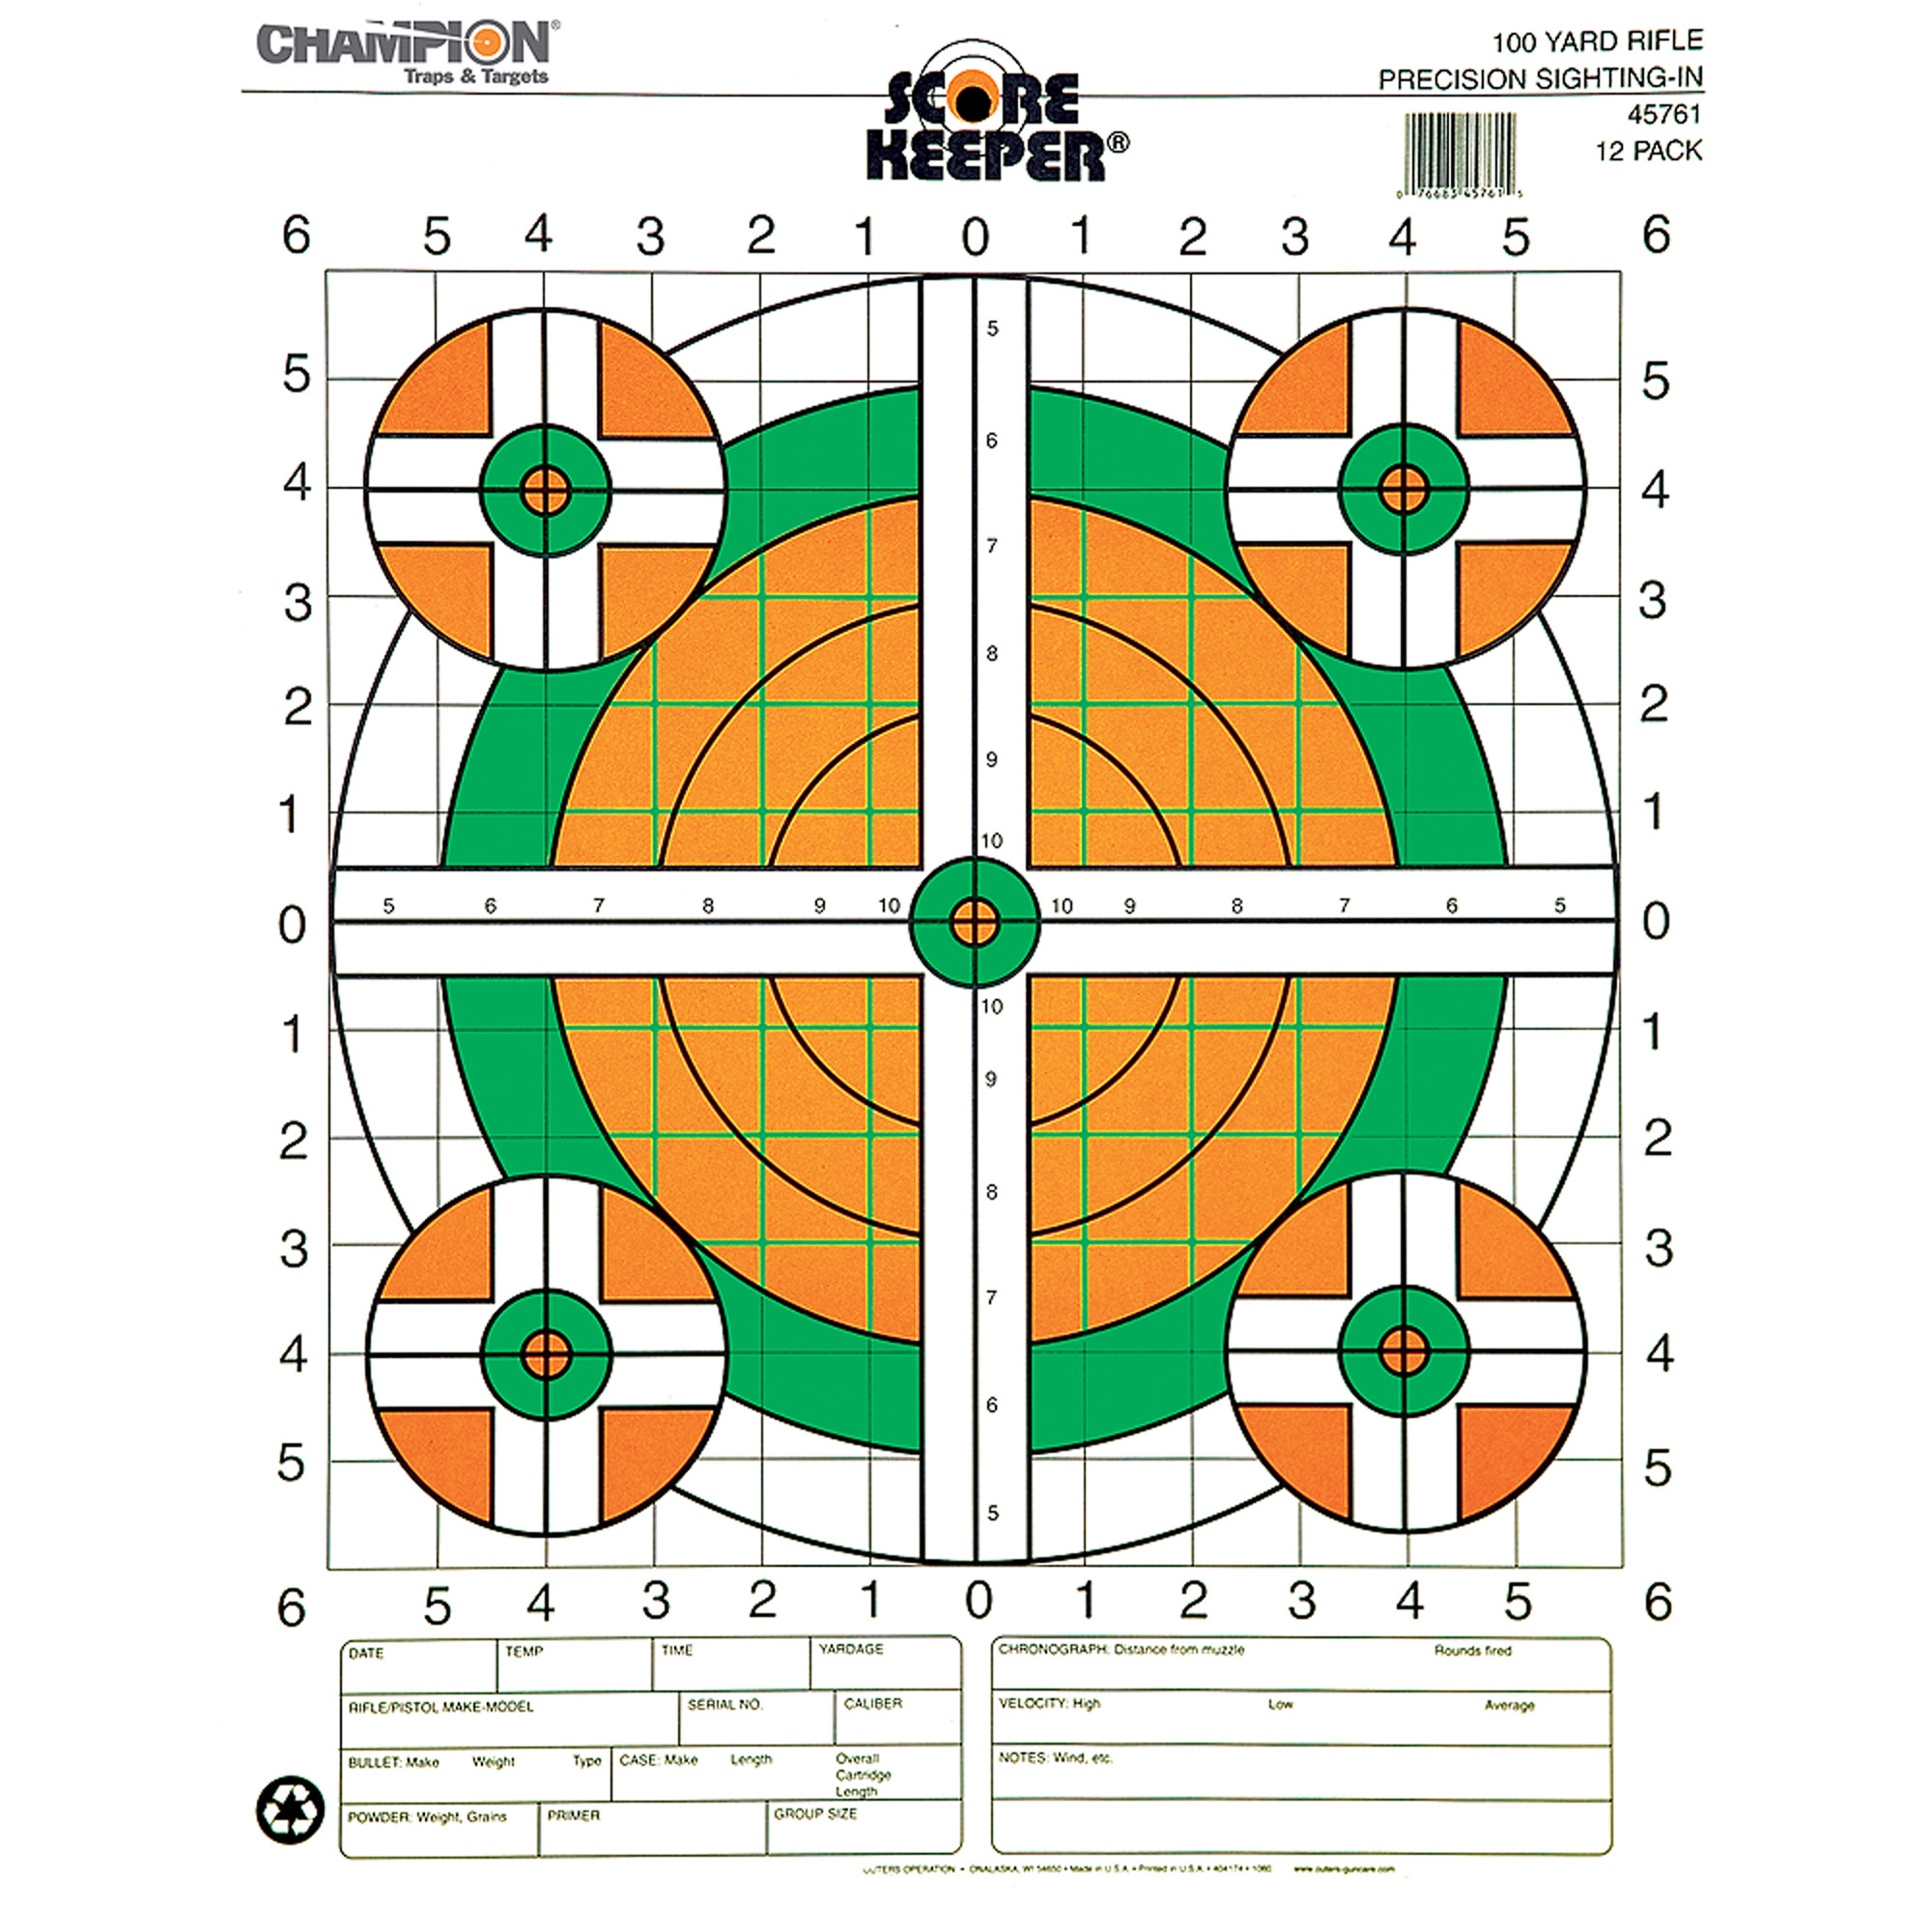 Champion Traps and Targets Fluorescent Orange/Green Bullseye Scorekeeper Target, 100 Yard Rifle Sight-In, 12pk